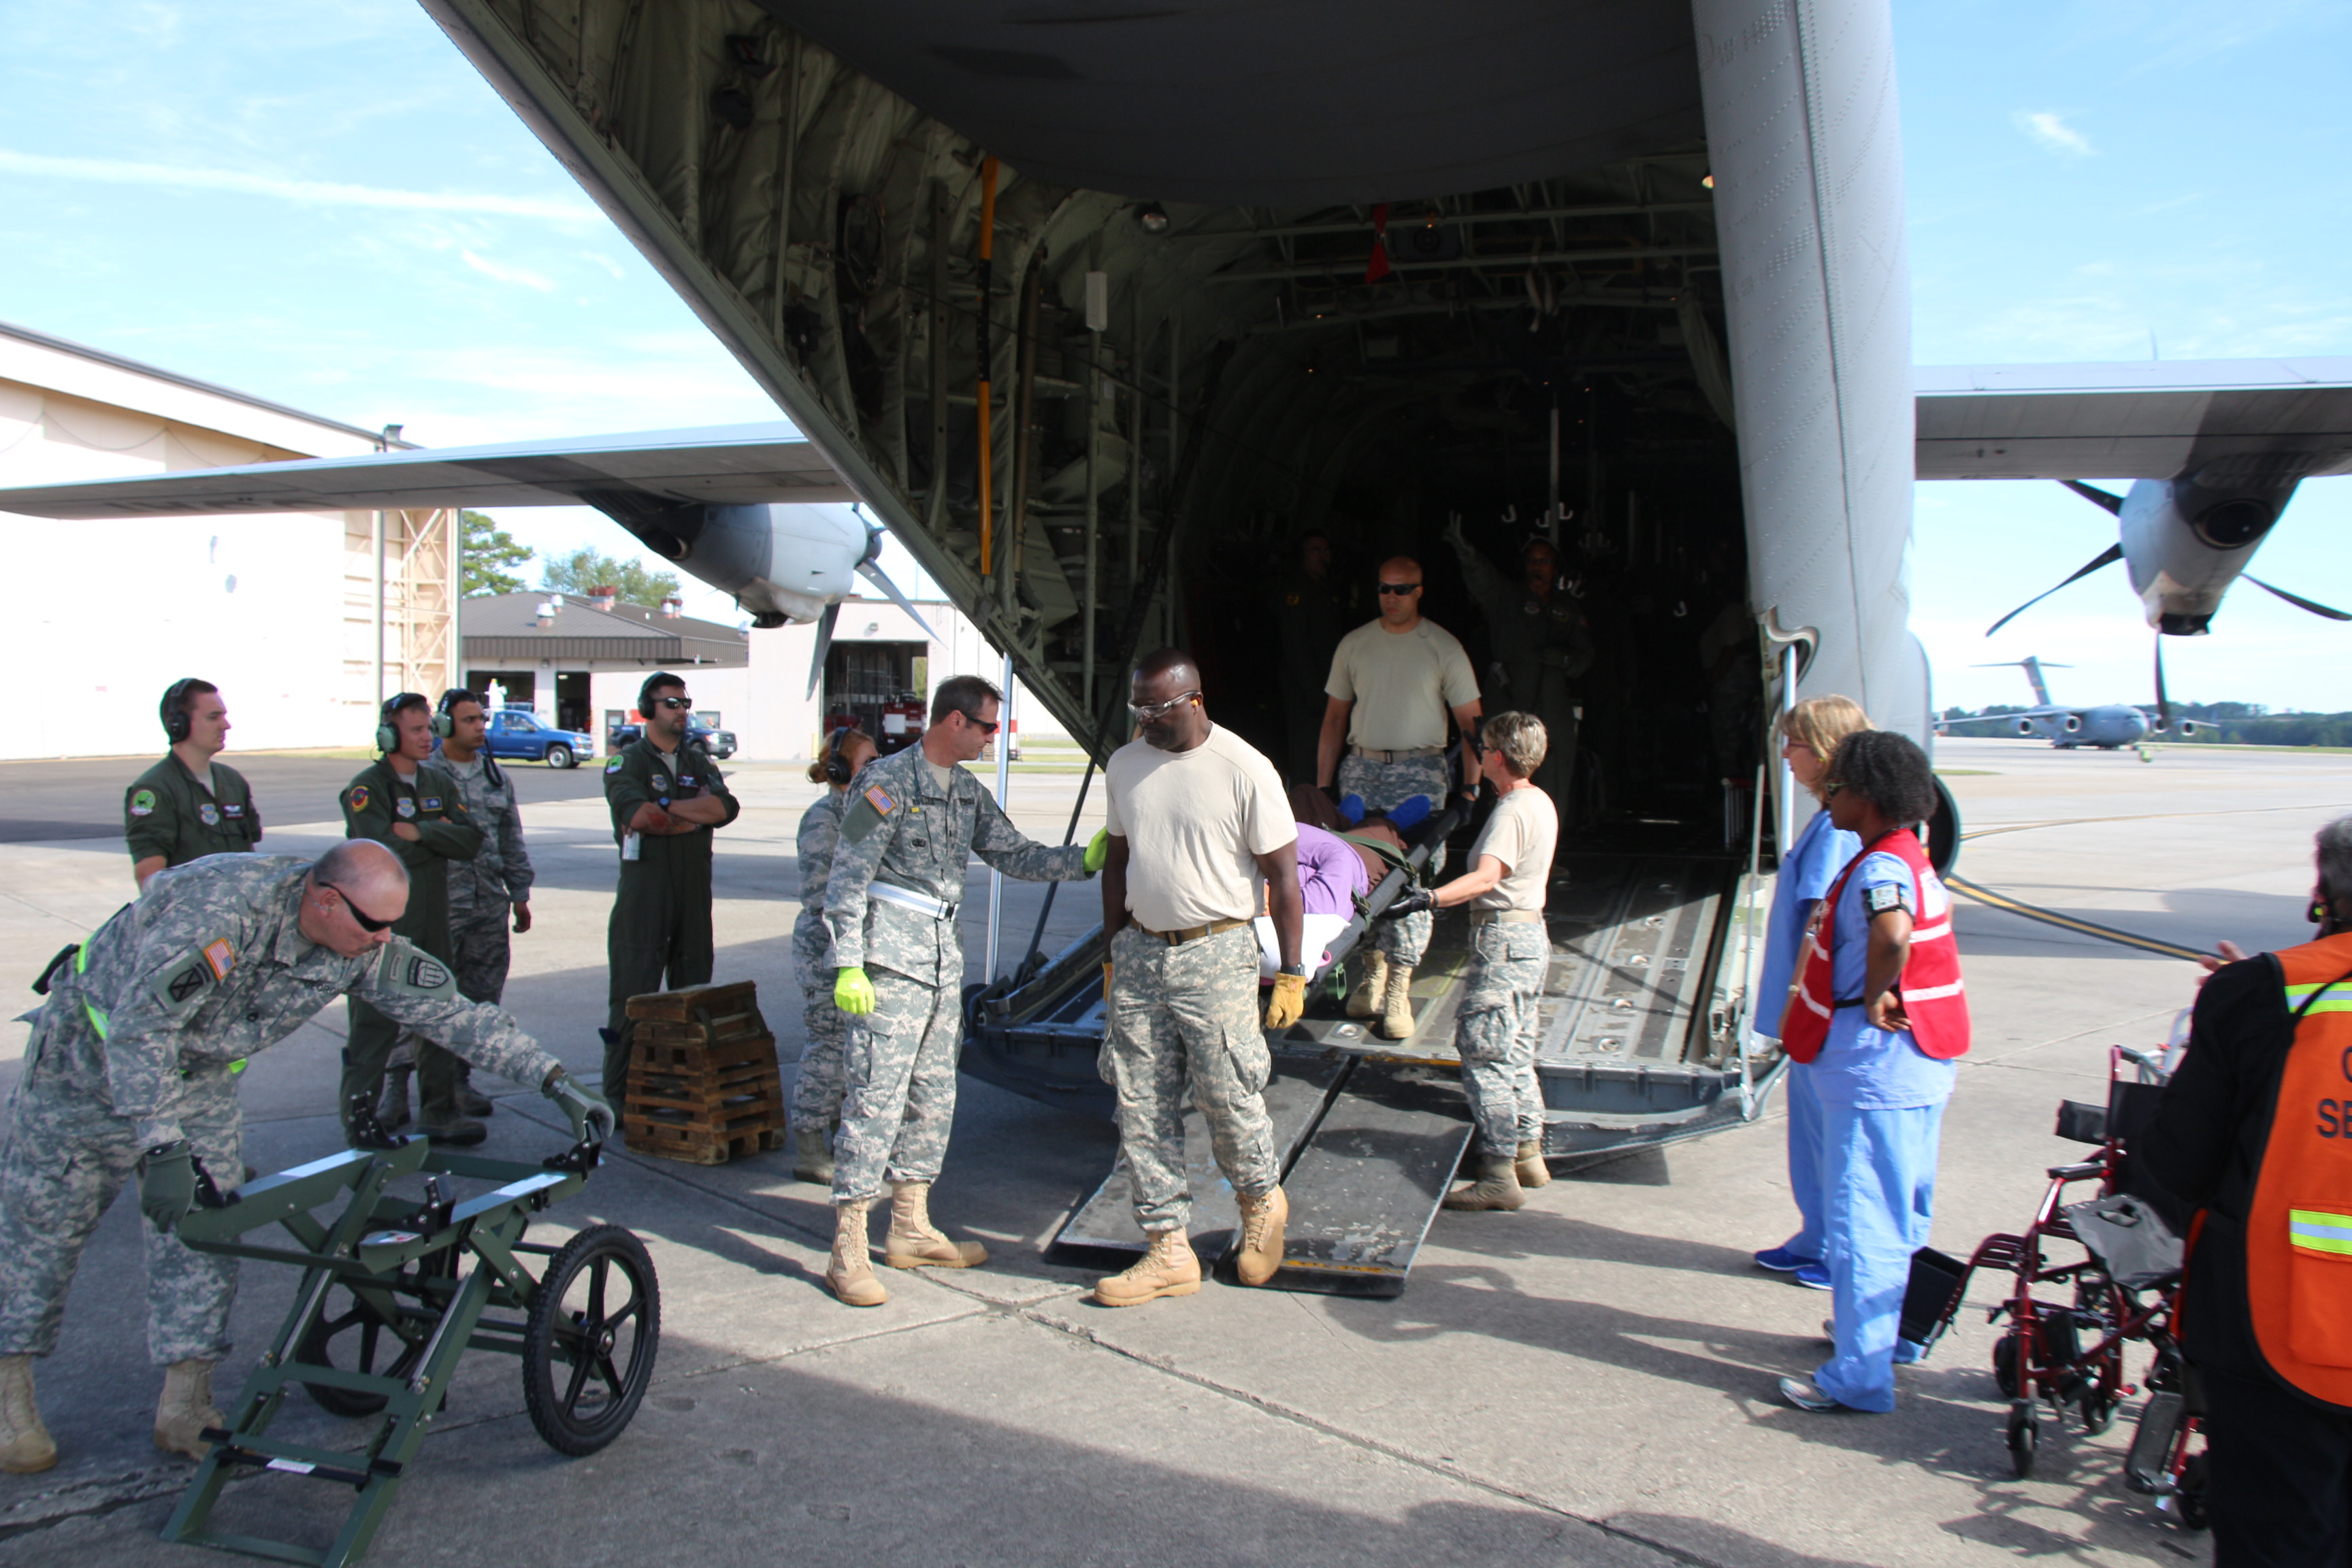 On photo: Sergeant First Class Steven Stewart prepares the litter carrier, Lieutenant Colonel Ronald Russell leads the offloading procedure that is conducted by Private Felix Apiki, Staff Sergeant Vicki Anderson and others. Over sixty Georgia State Defense Force soldiers tirelessly worked for ten days and eleven nights offloading evacuees who were transported to Dobbins Air Reserve Base, Marietta, Georgia from the U.S. Virgin Islands and Puerto Rico in the aftermath of Hurricane Maria, between September 22 and October 1, 2017. Georgia State Defense Force photo by Maj. Vadim Timchenko